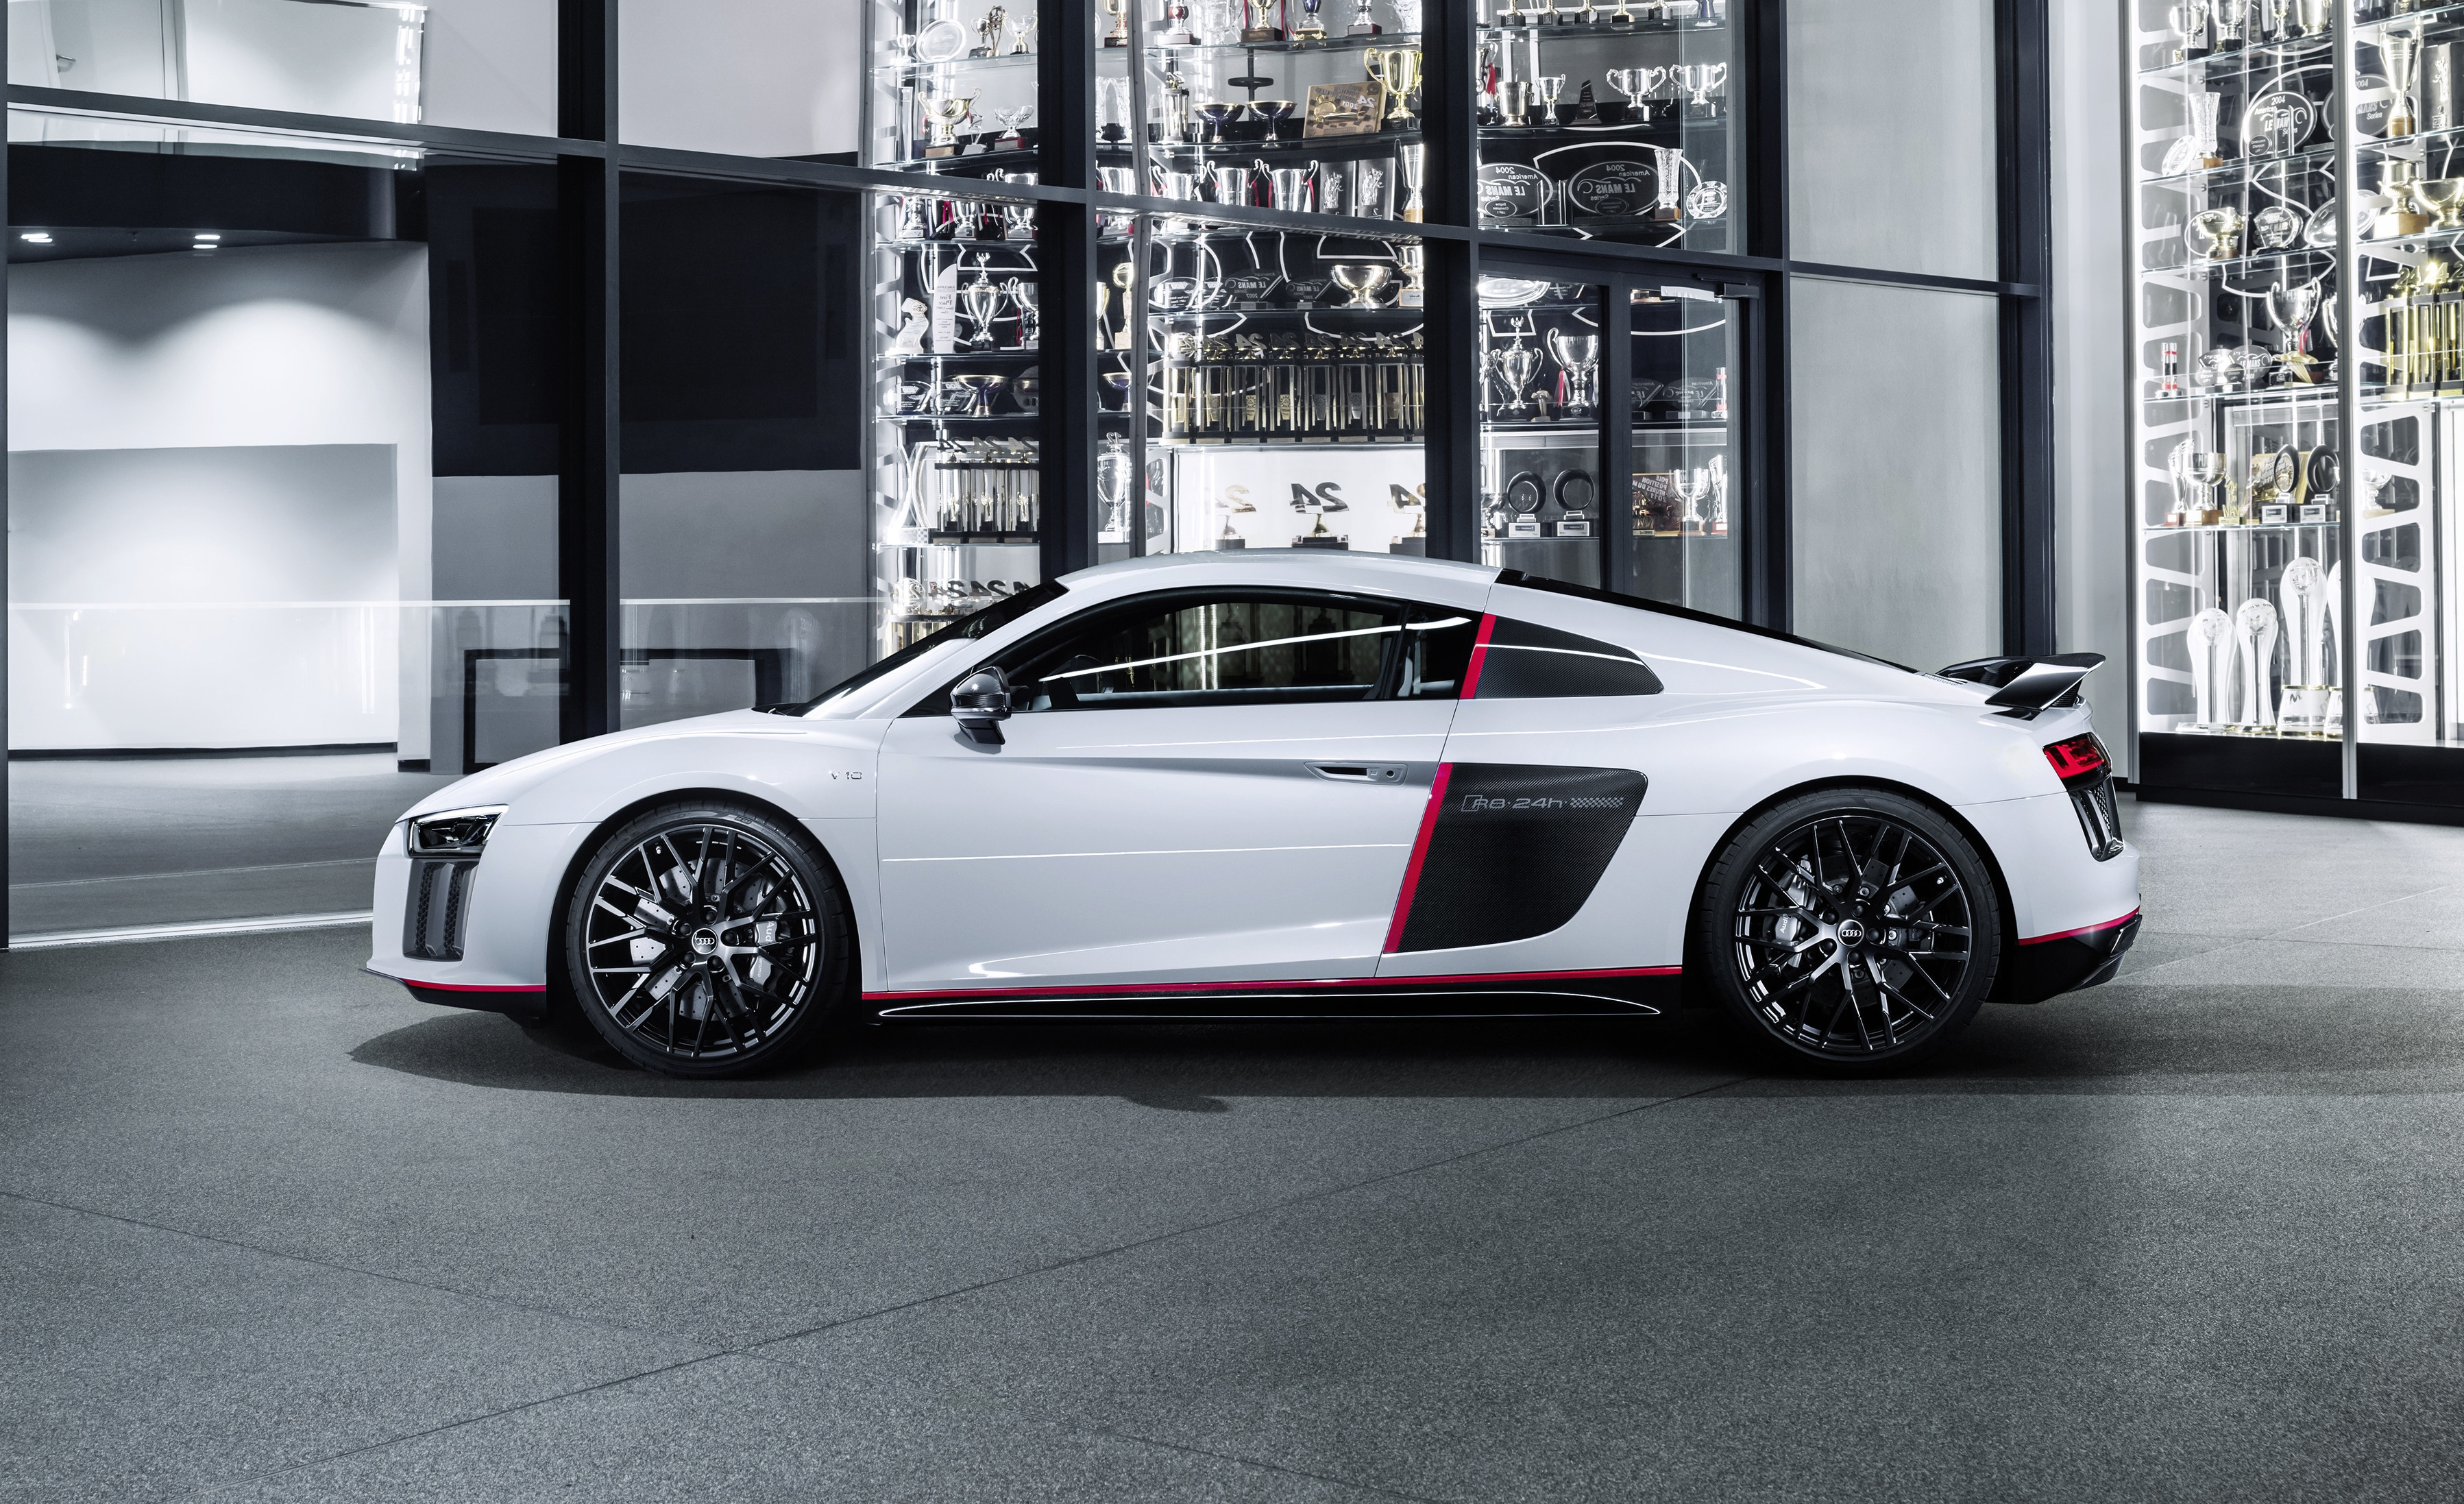 Audi R8 Wallpapers Images Photos Pictures Backgrounds